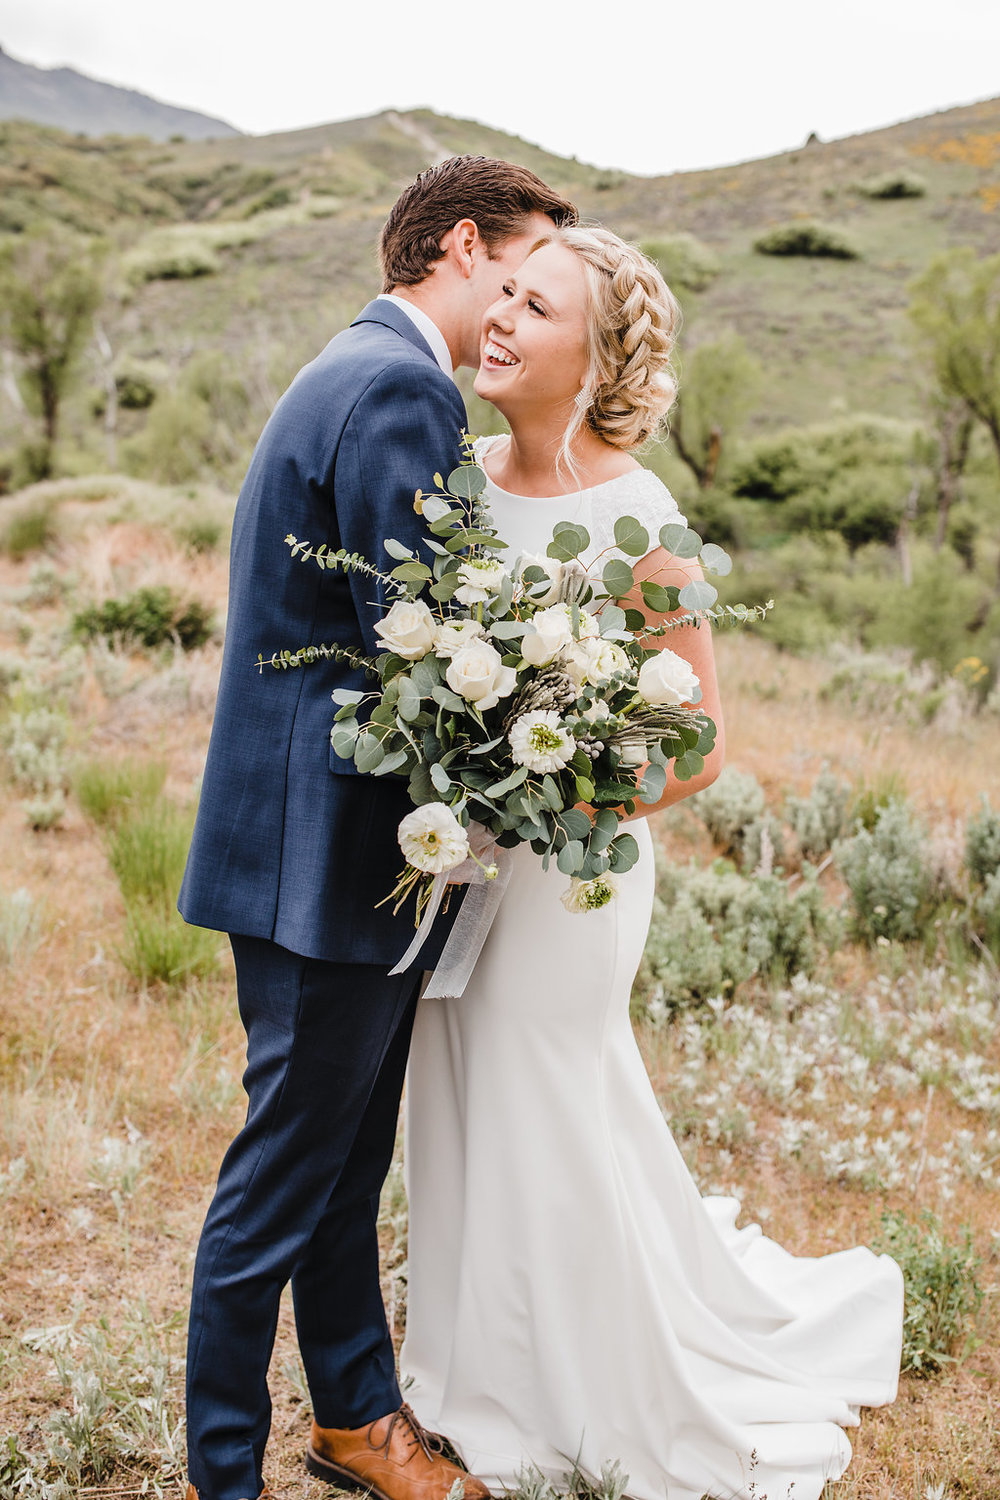 bride and groom young couple logan utah wedding photographer formals photo shoot formals photography in a mountain